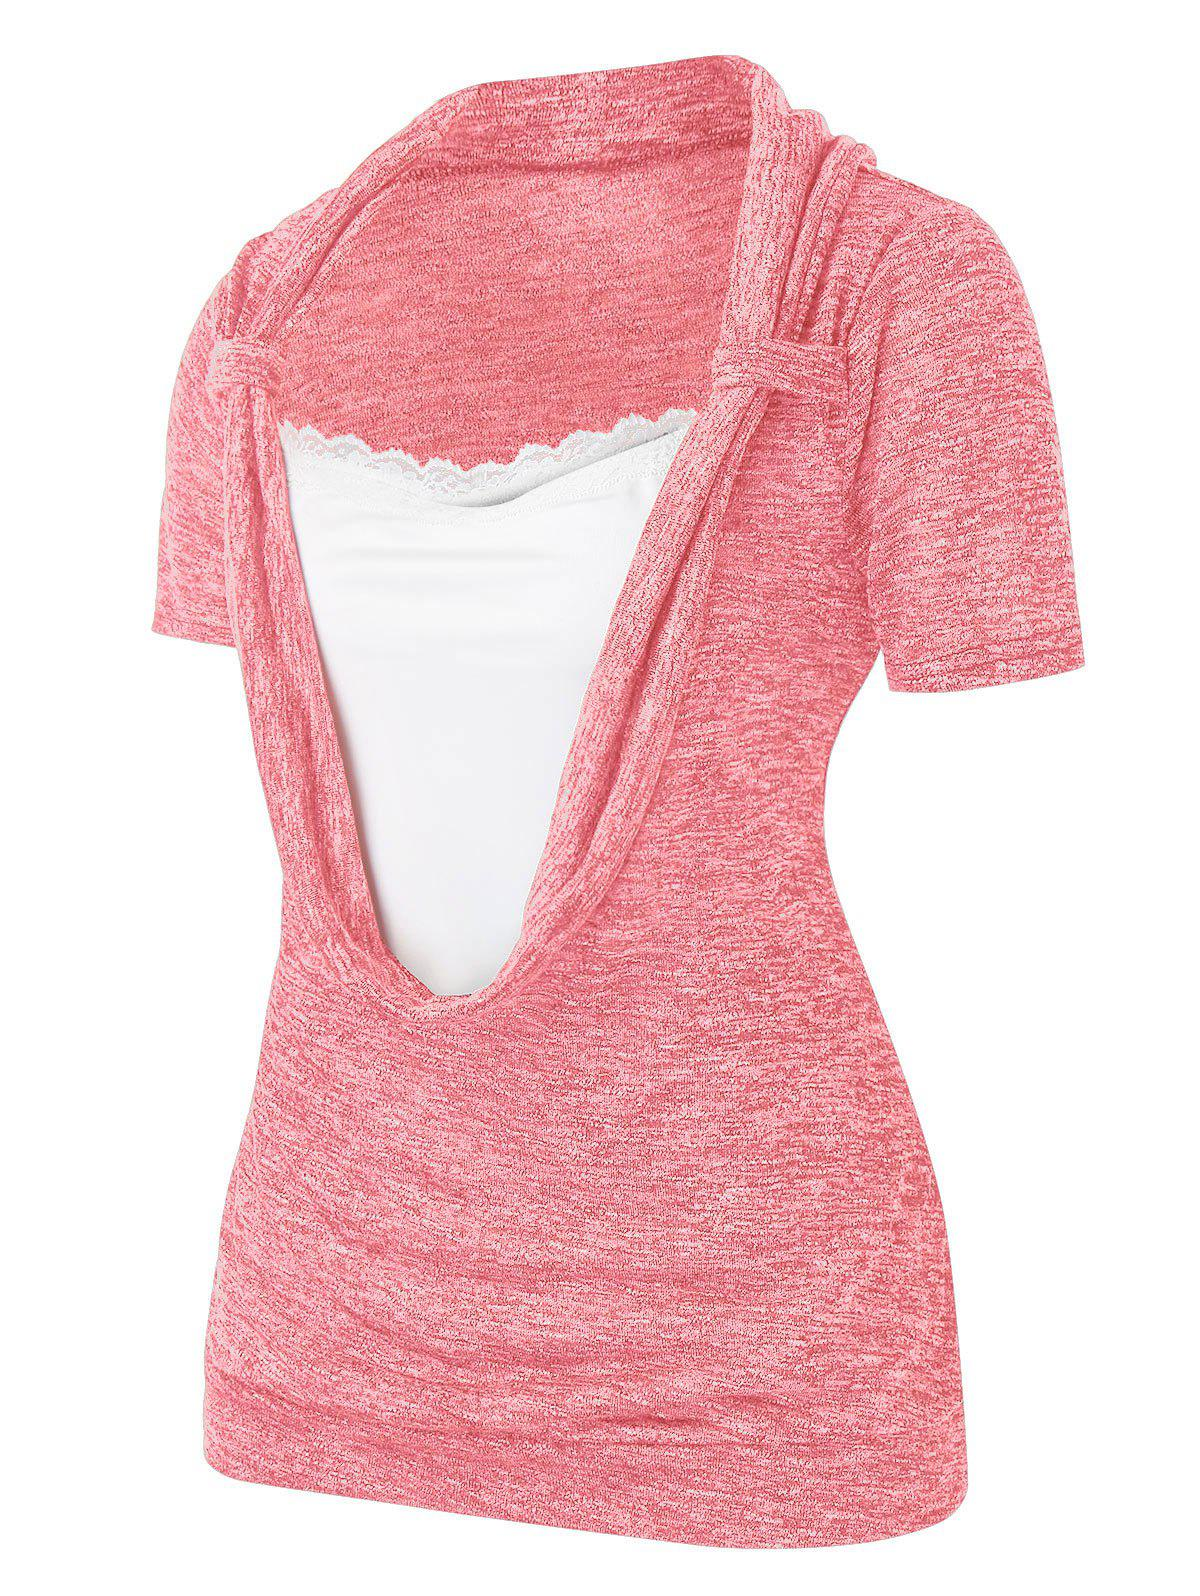 Trendy Plus Size Cowl Front Marled Lace Embellished T Shirt